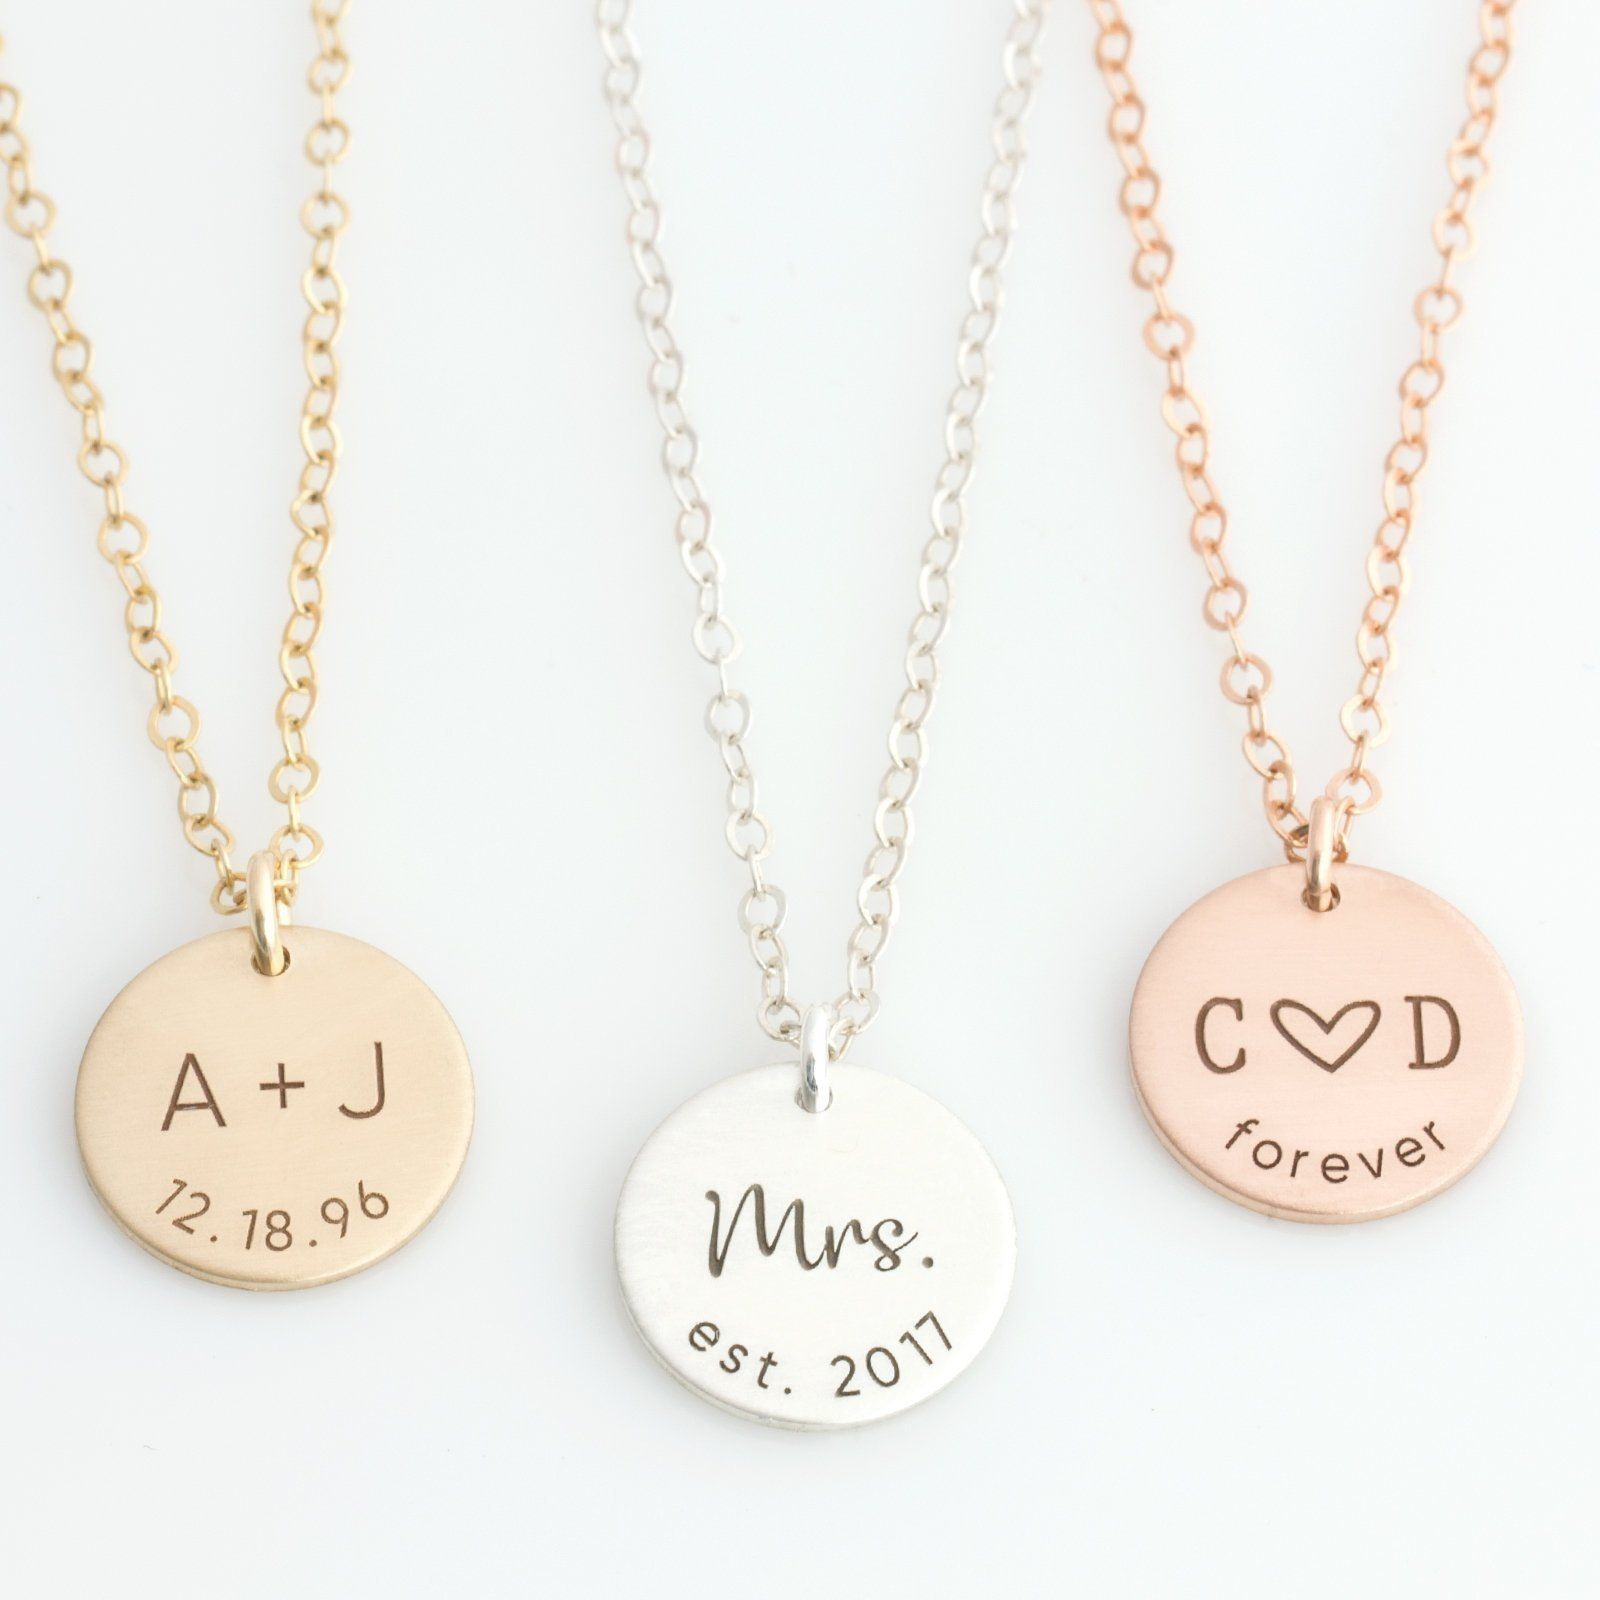 Personalized anniversary date necklace valentines gift